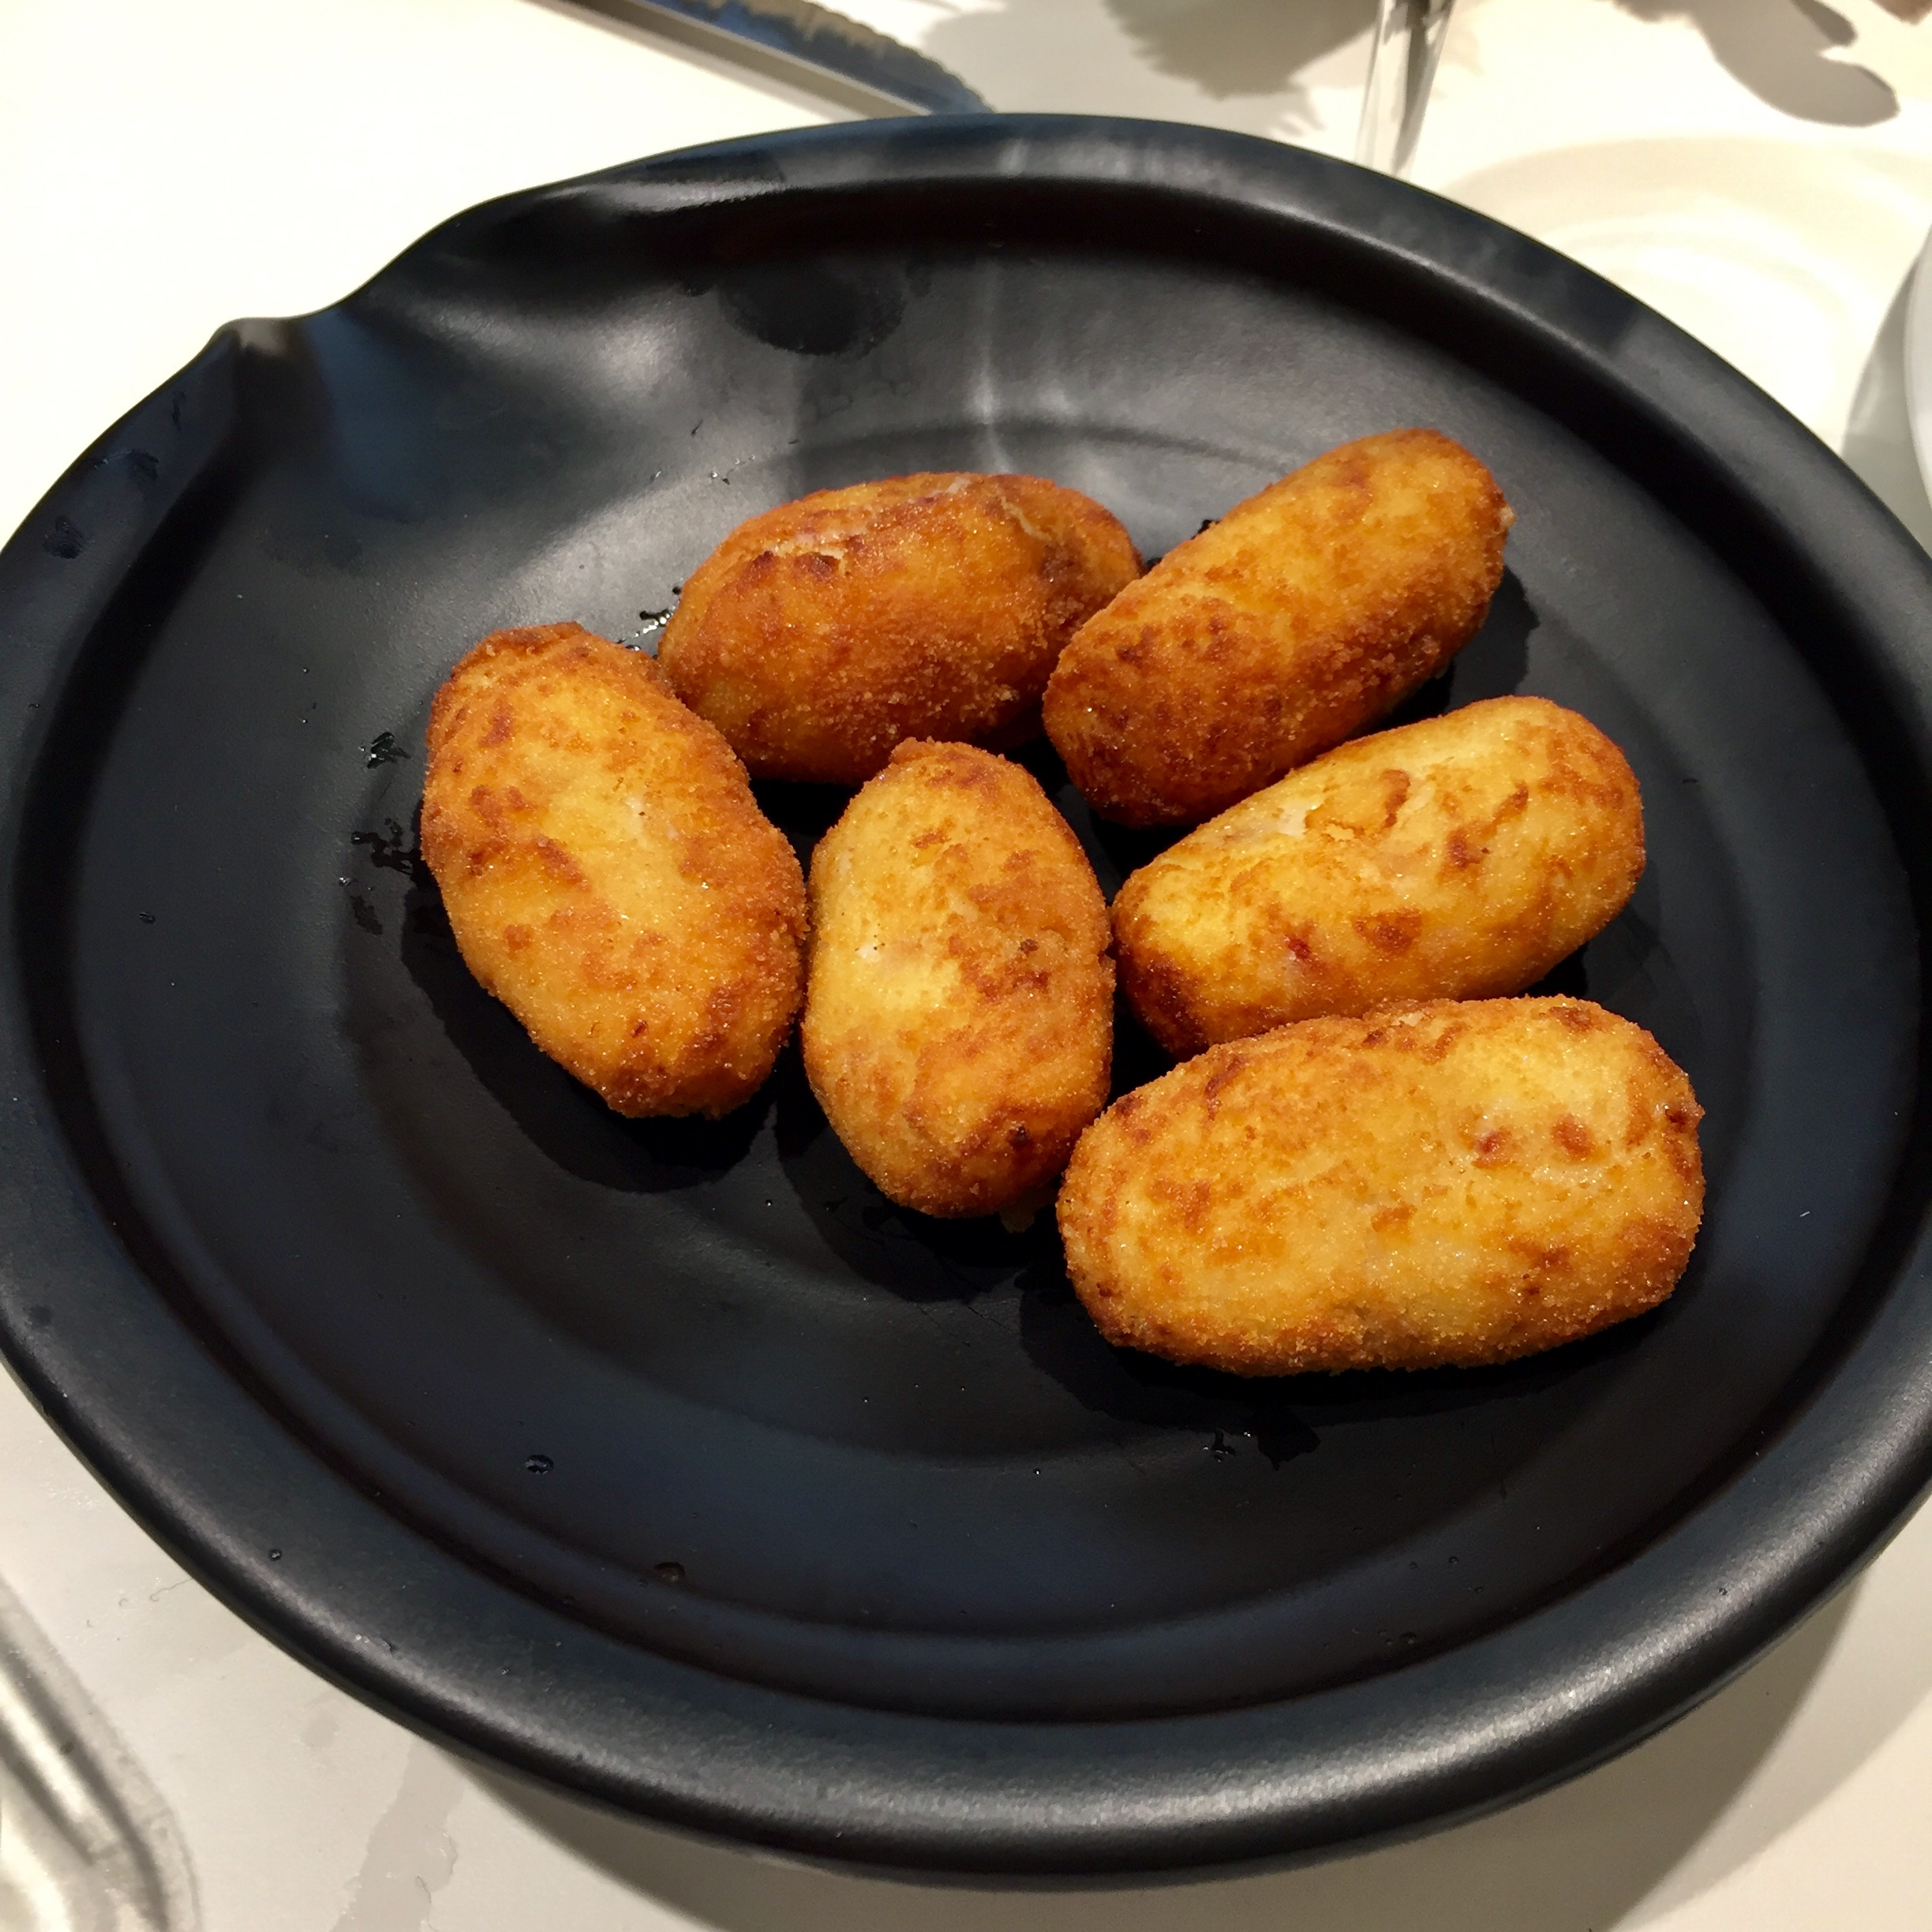 Spanish croquettes are one of the Spain's most popular tapas